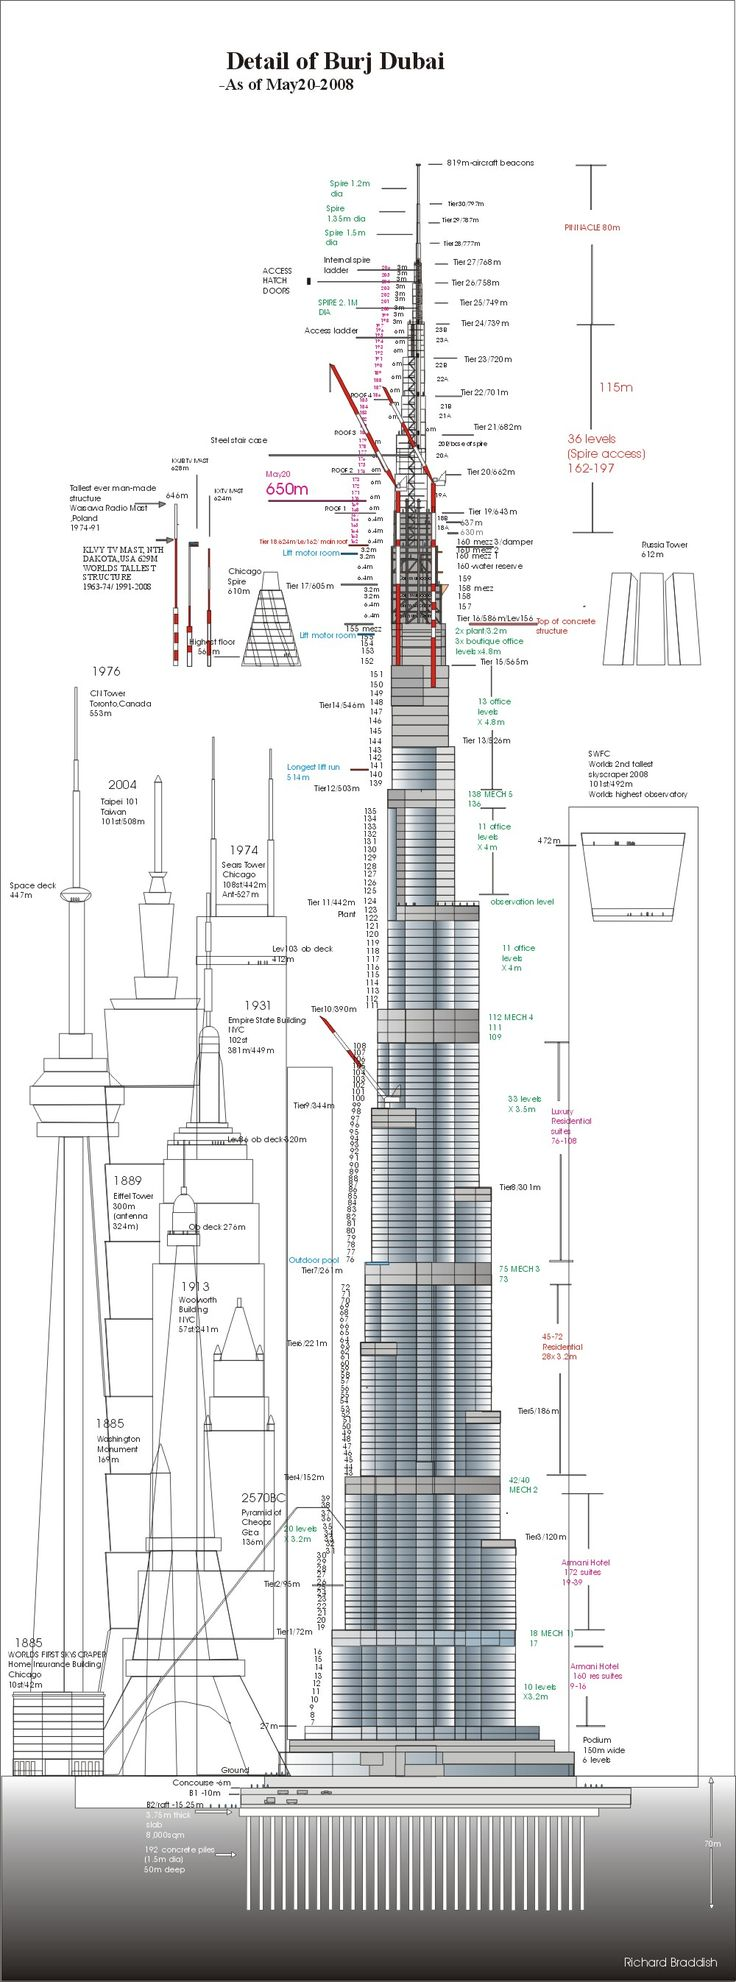 Looks like photo shop for the building clipart and the Burj Dubai building was made in Illustrator. Organized in InDesign.